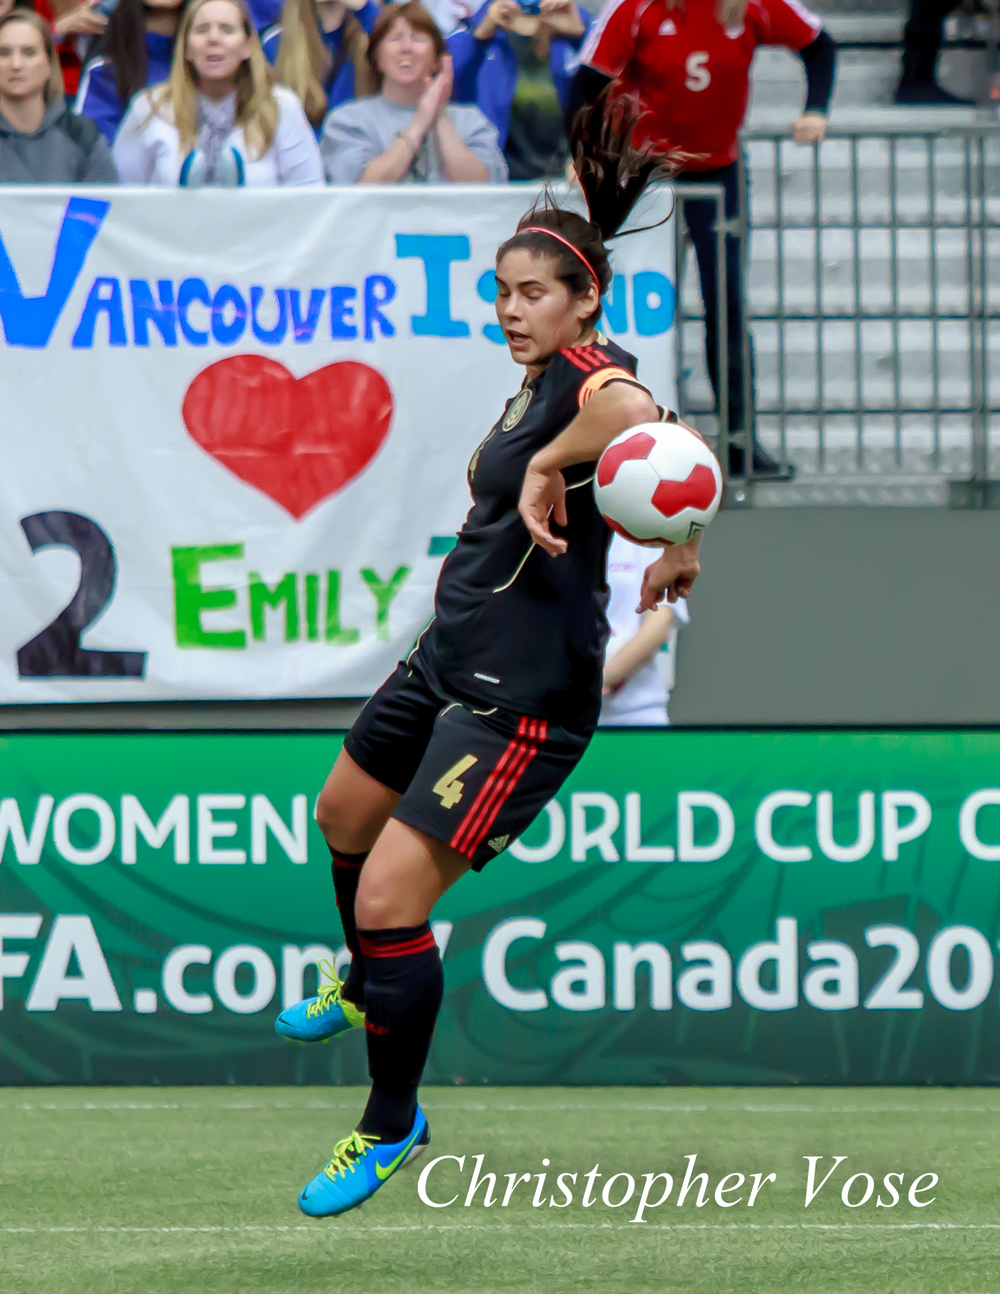 Controversially, Alina Garciamendez was judged by the referee not to have handled the ball in the box at BC Place on 24 November 2013.